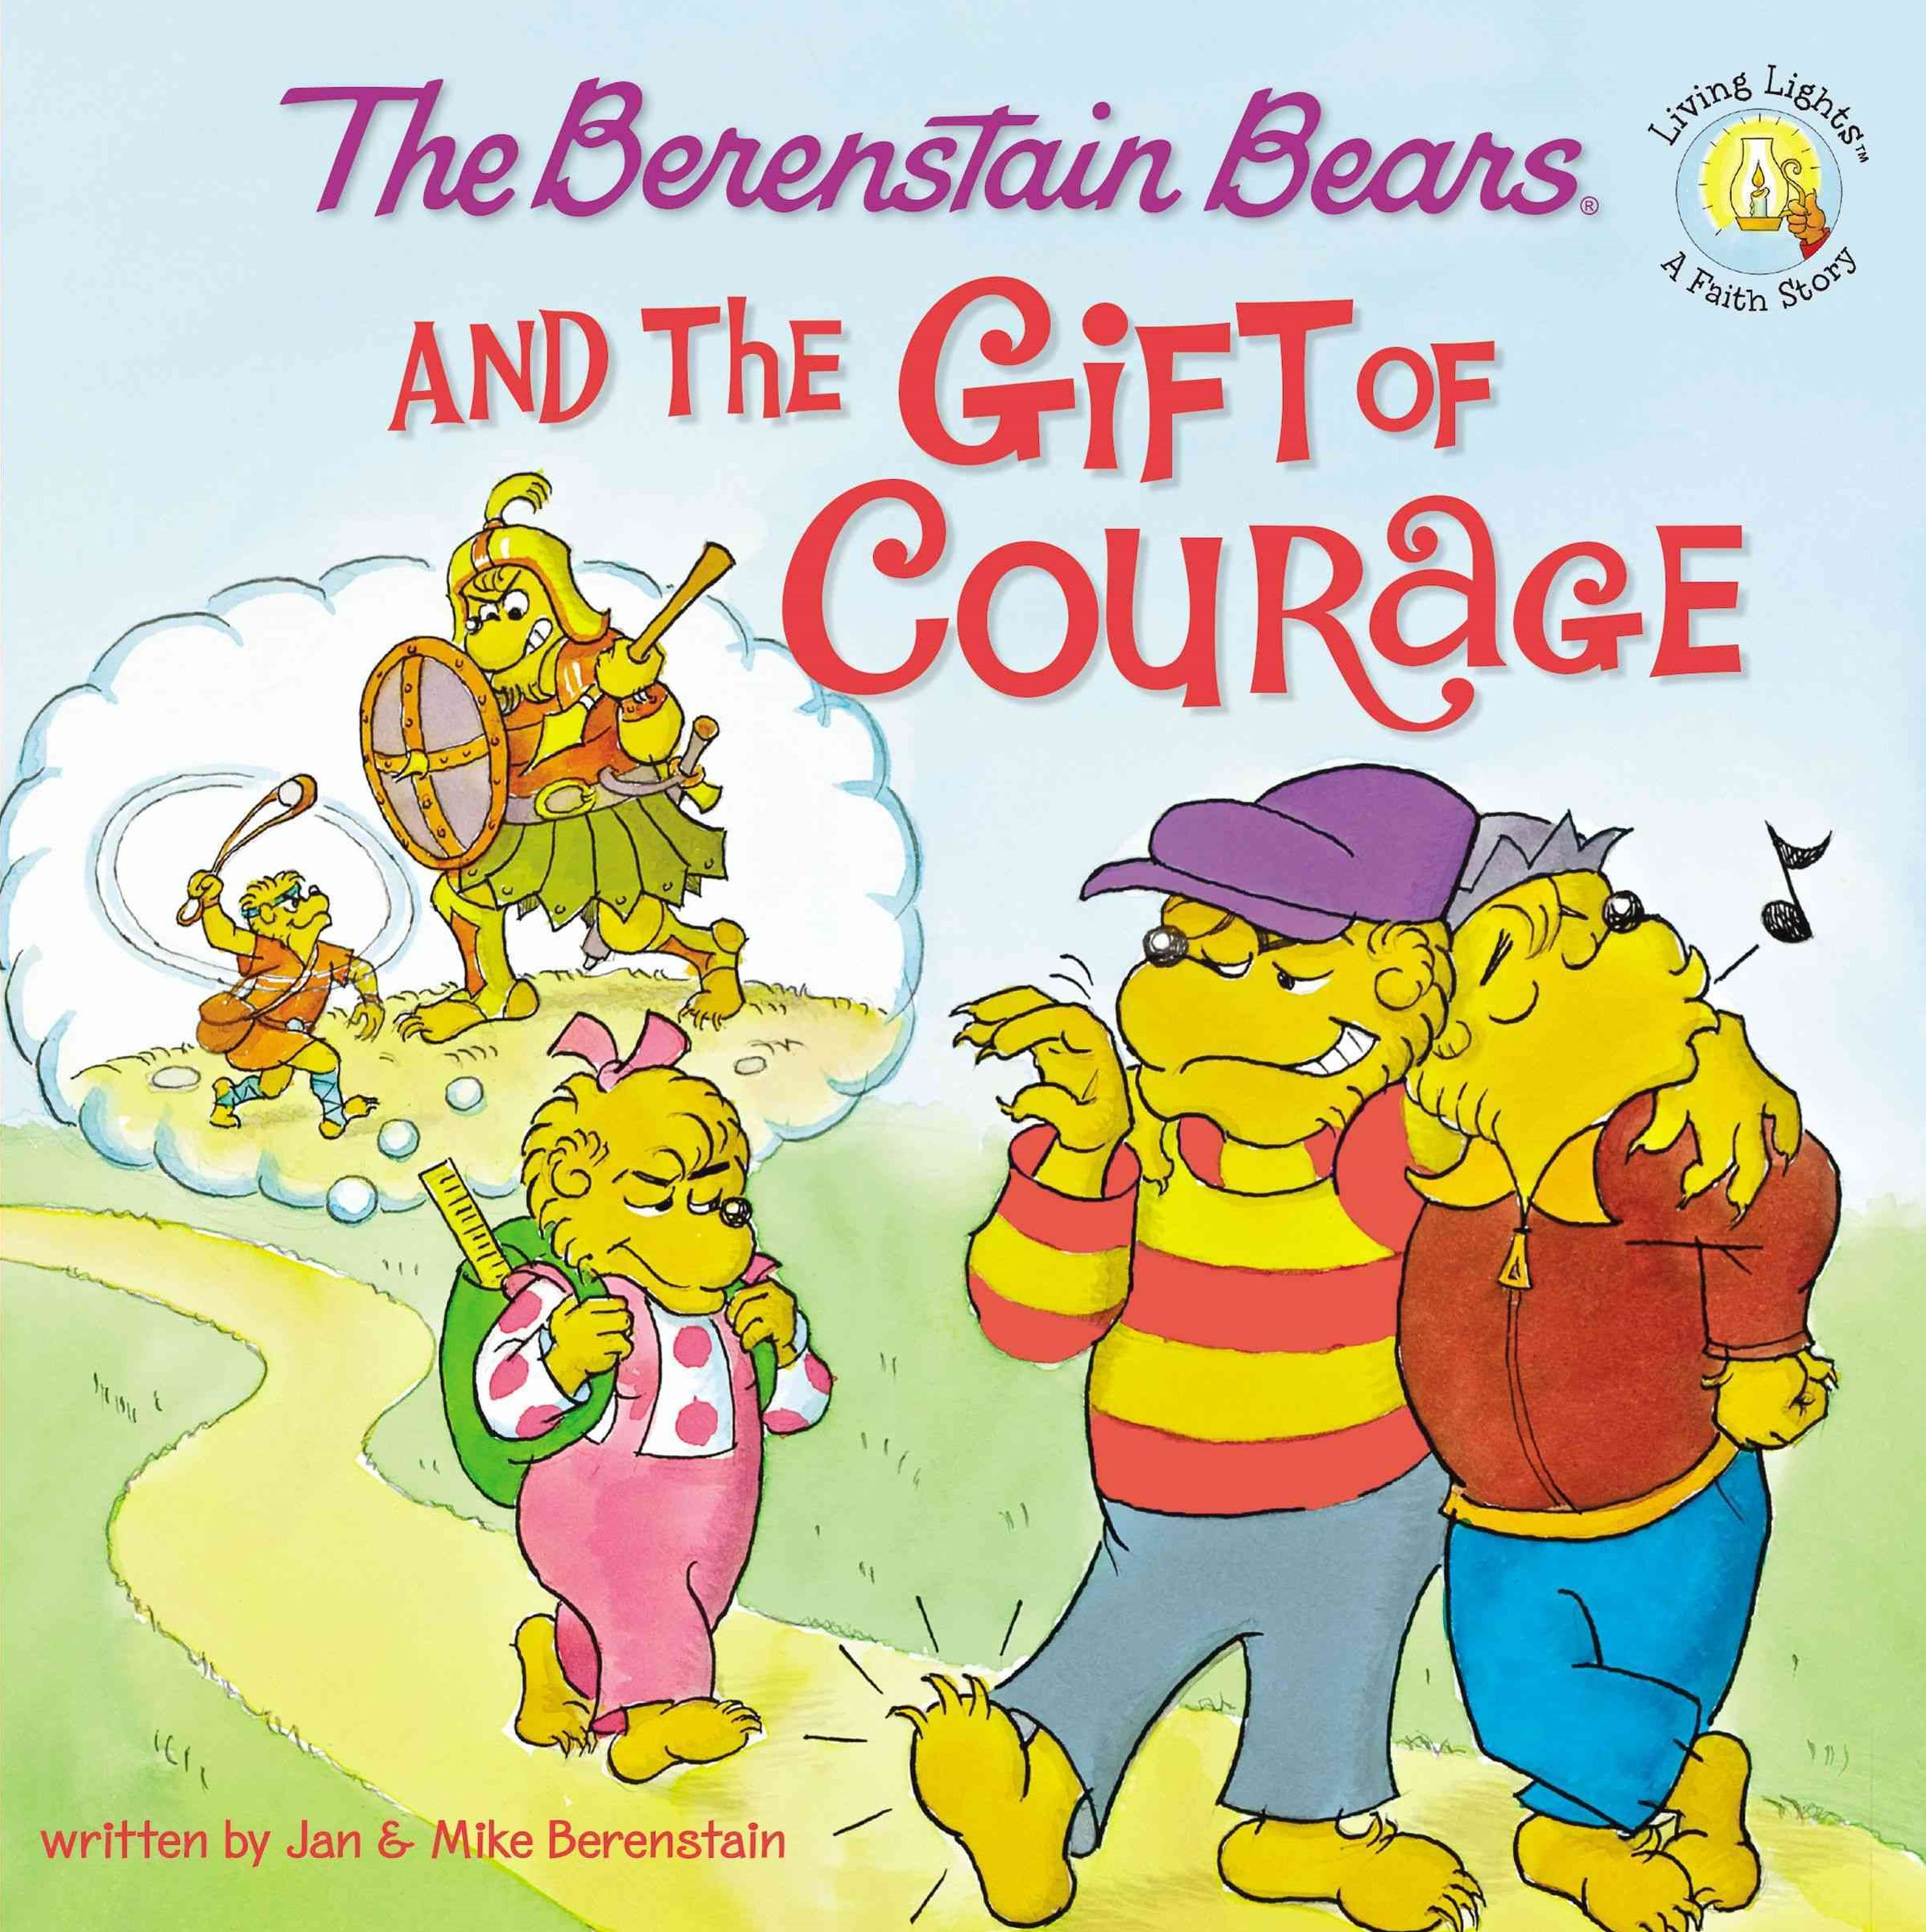 Berenstain Bears and the Gift of Courage